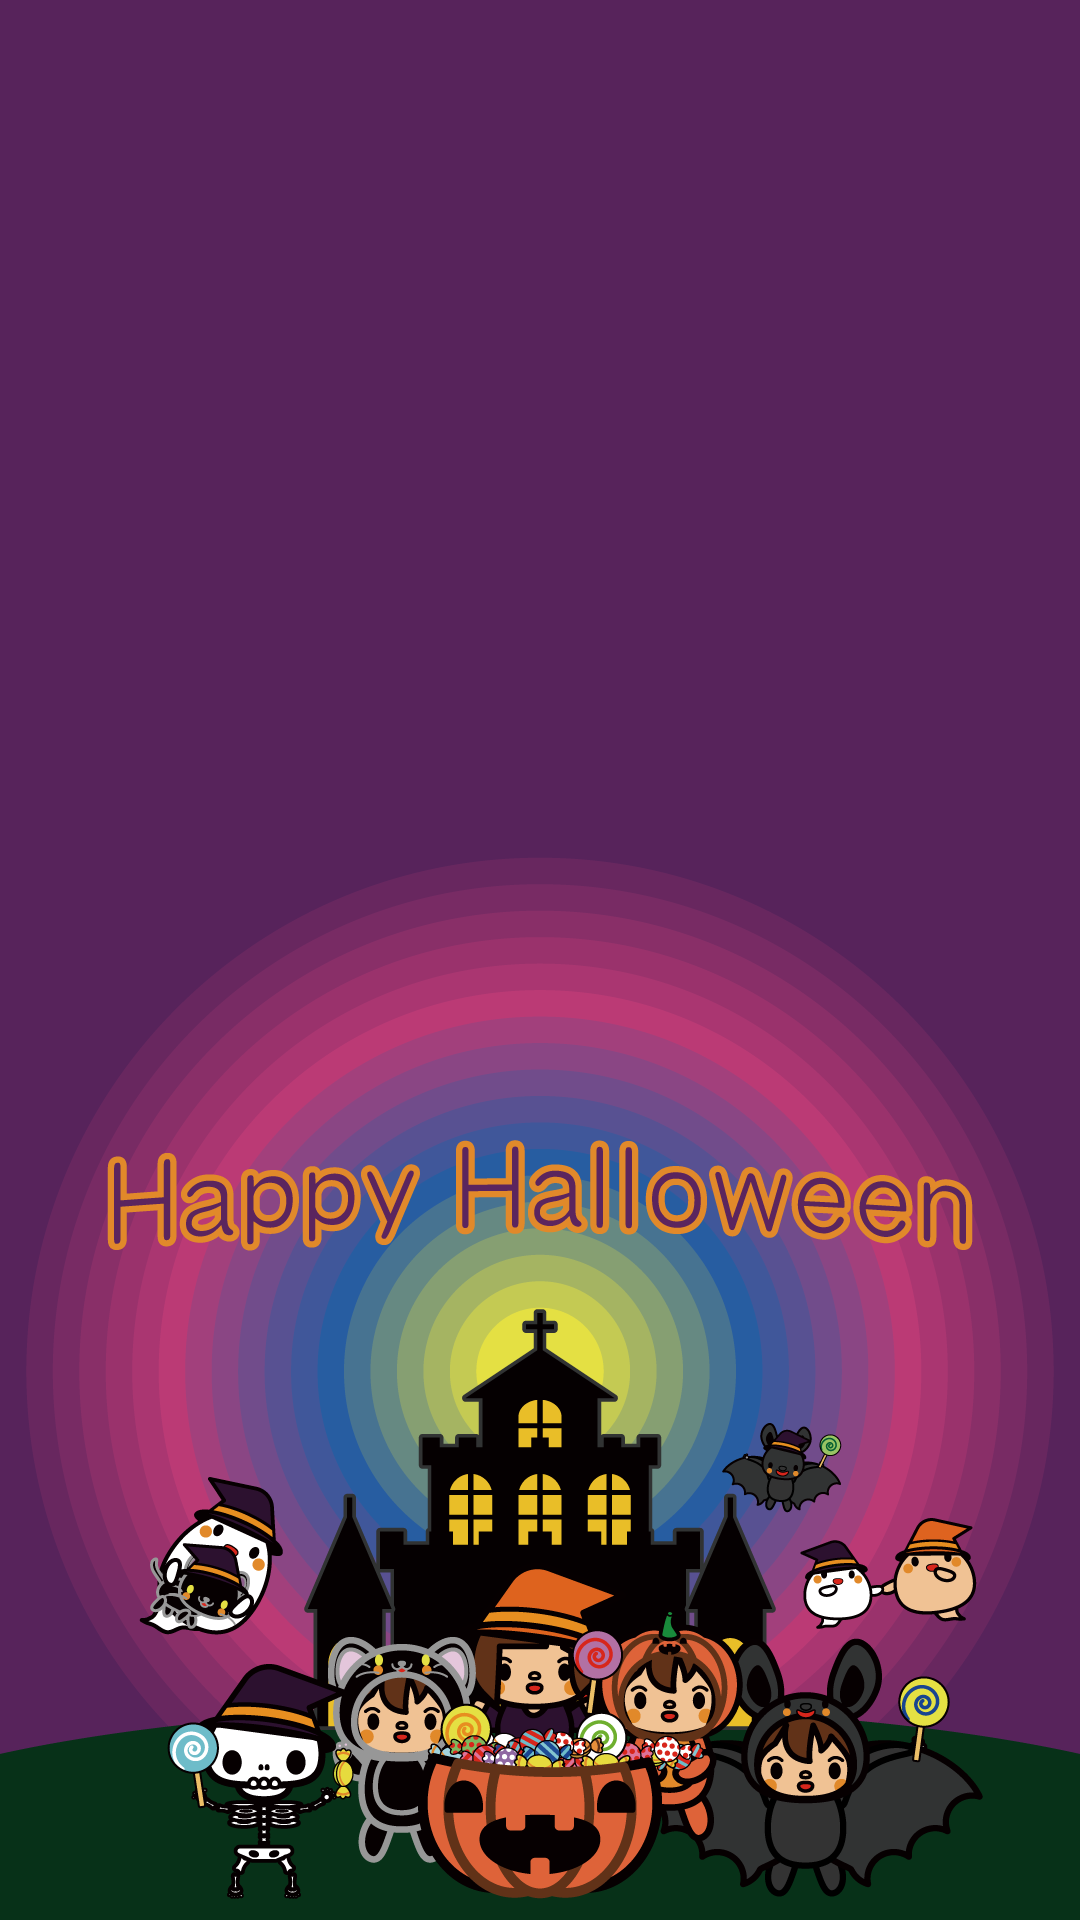 wallpaper1_happy-halloween-iphone